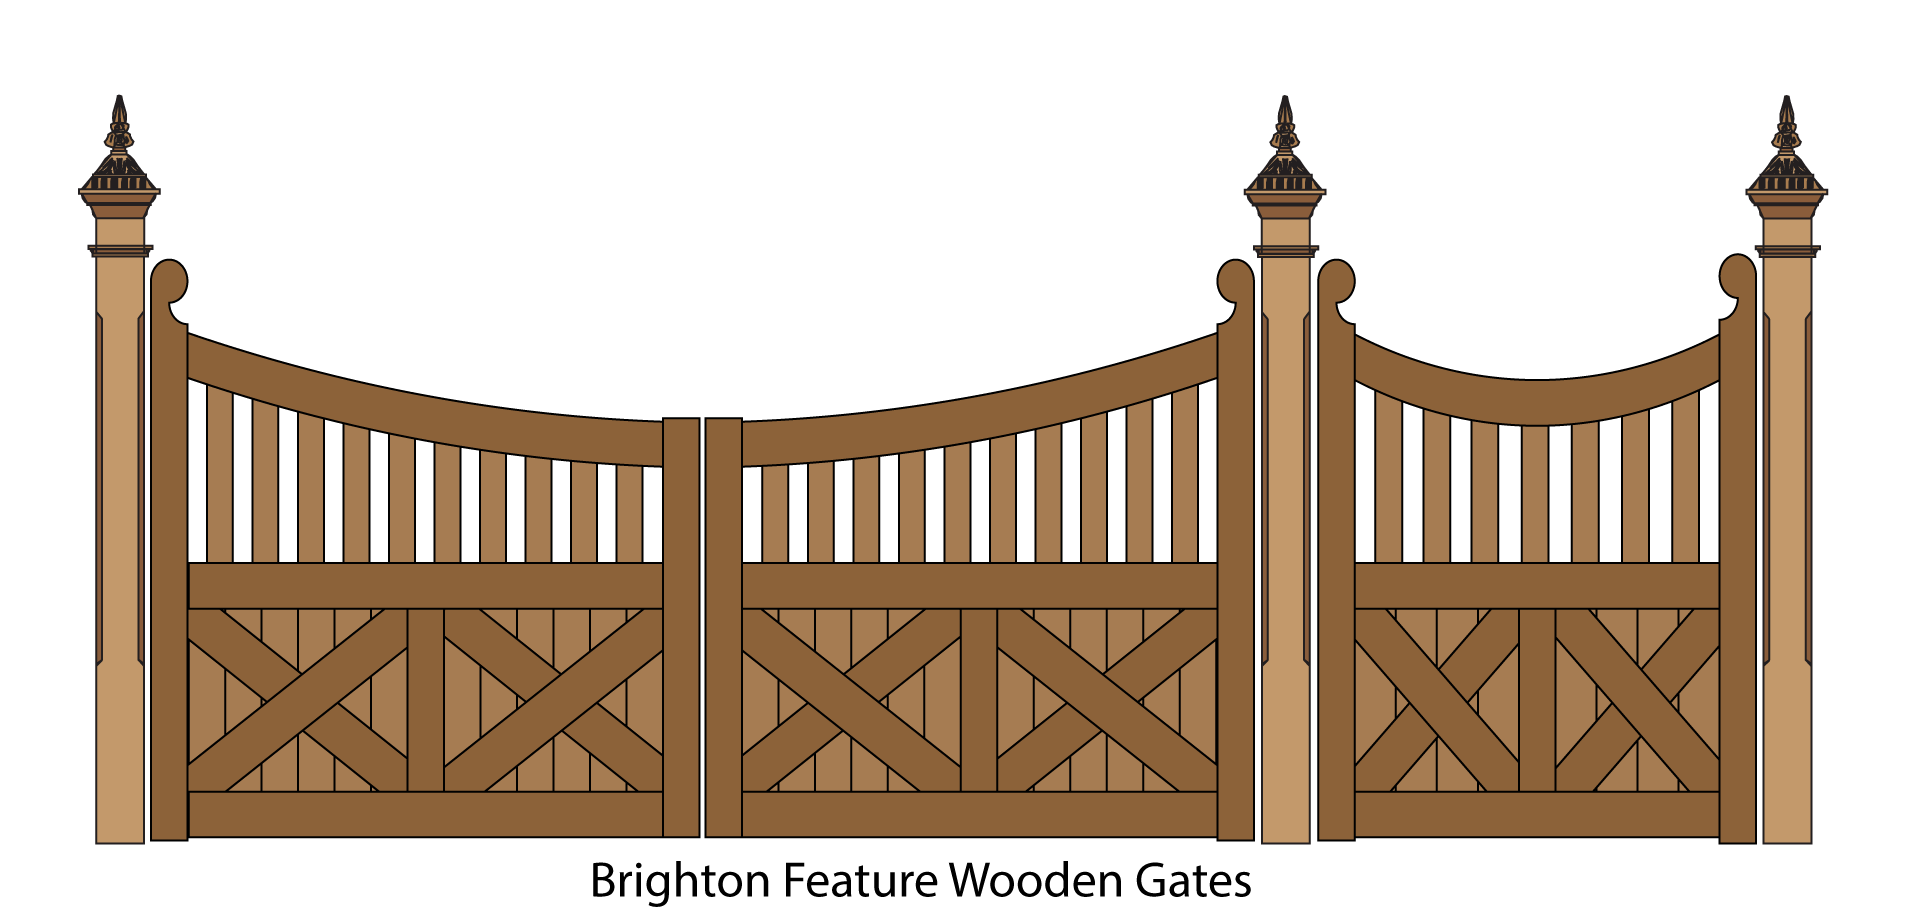 Halloween clipart gate. Brighton feature wooden gates